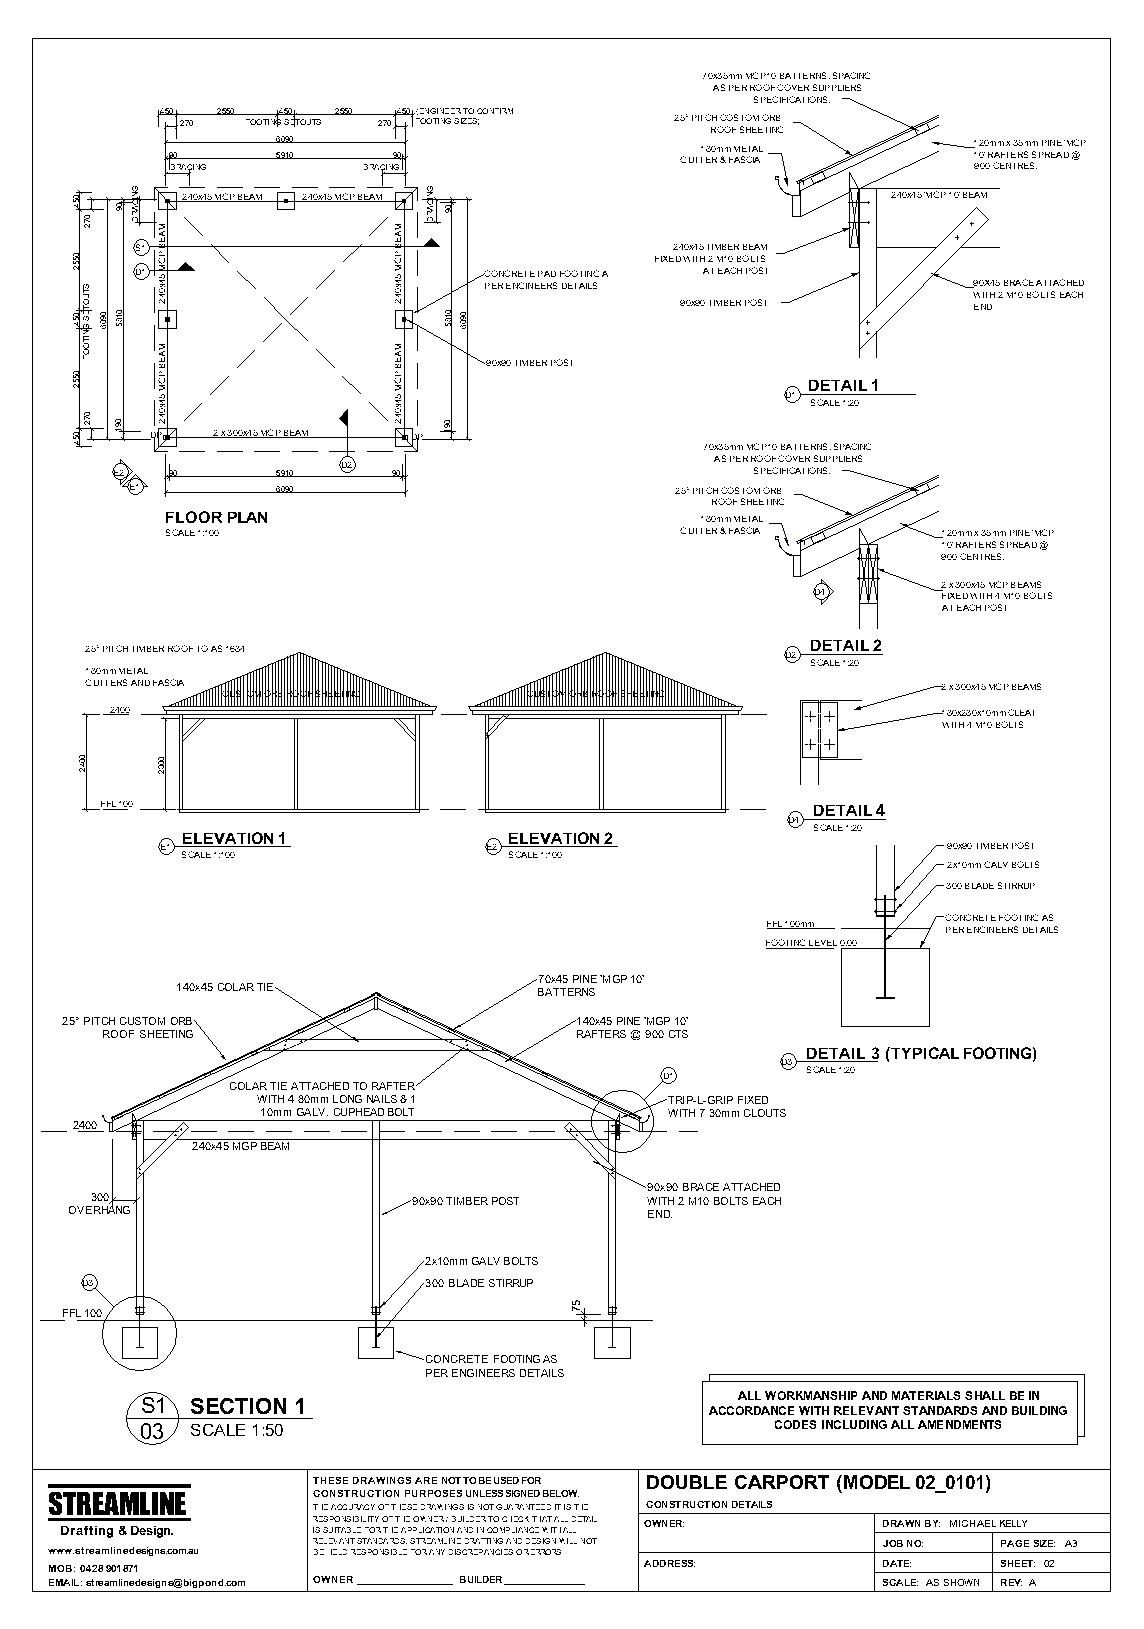 Download Free Carport Plans Building F Appetizers – Free Garage Building Plans Download